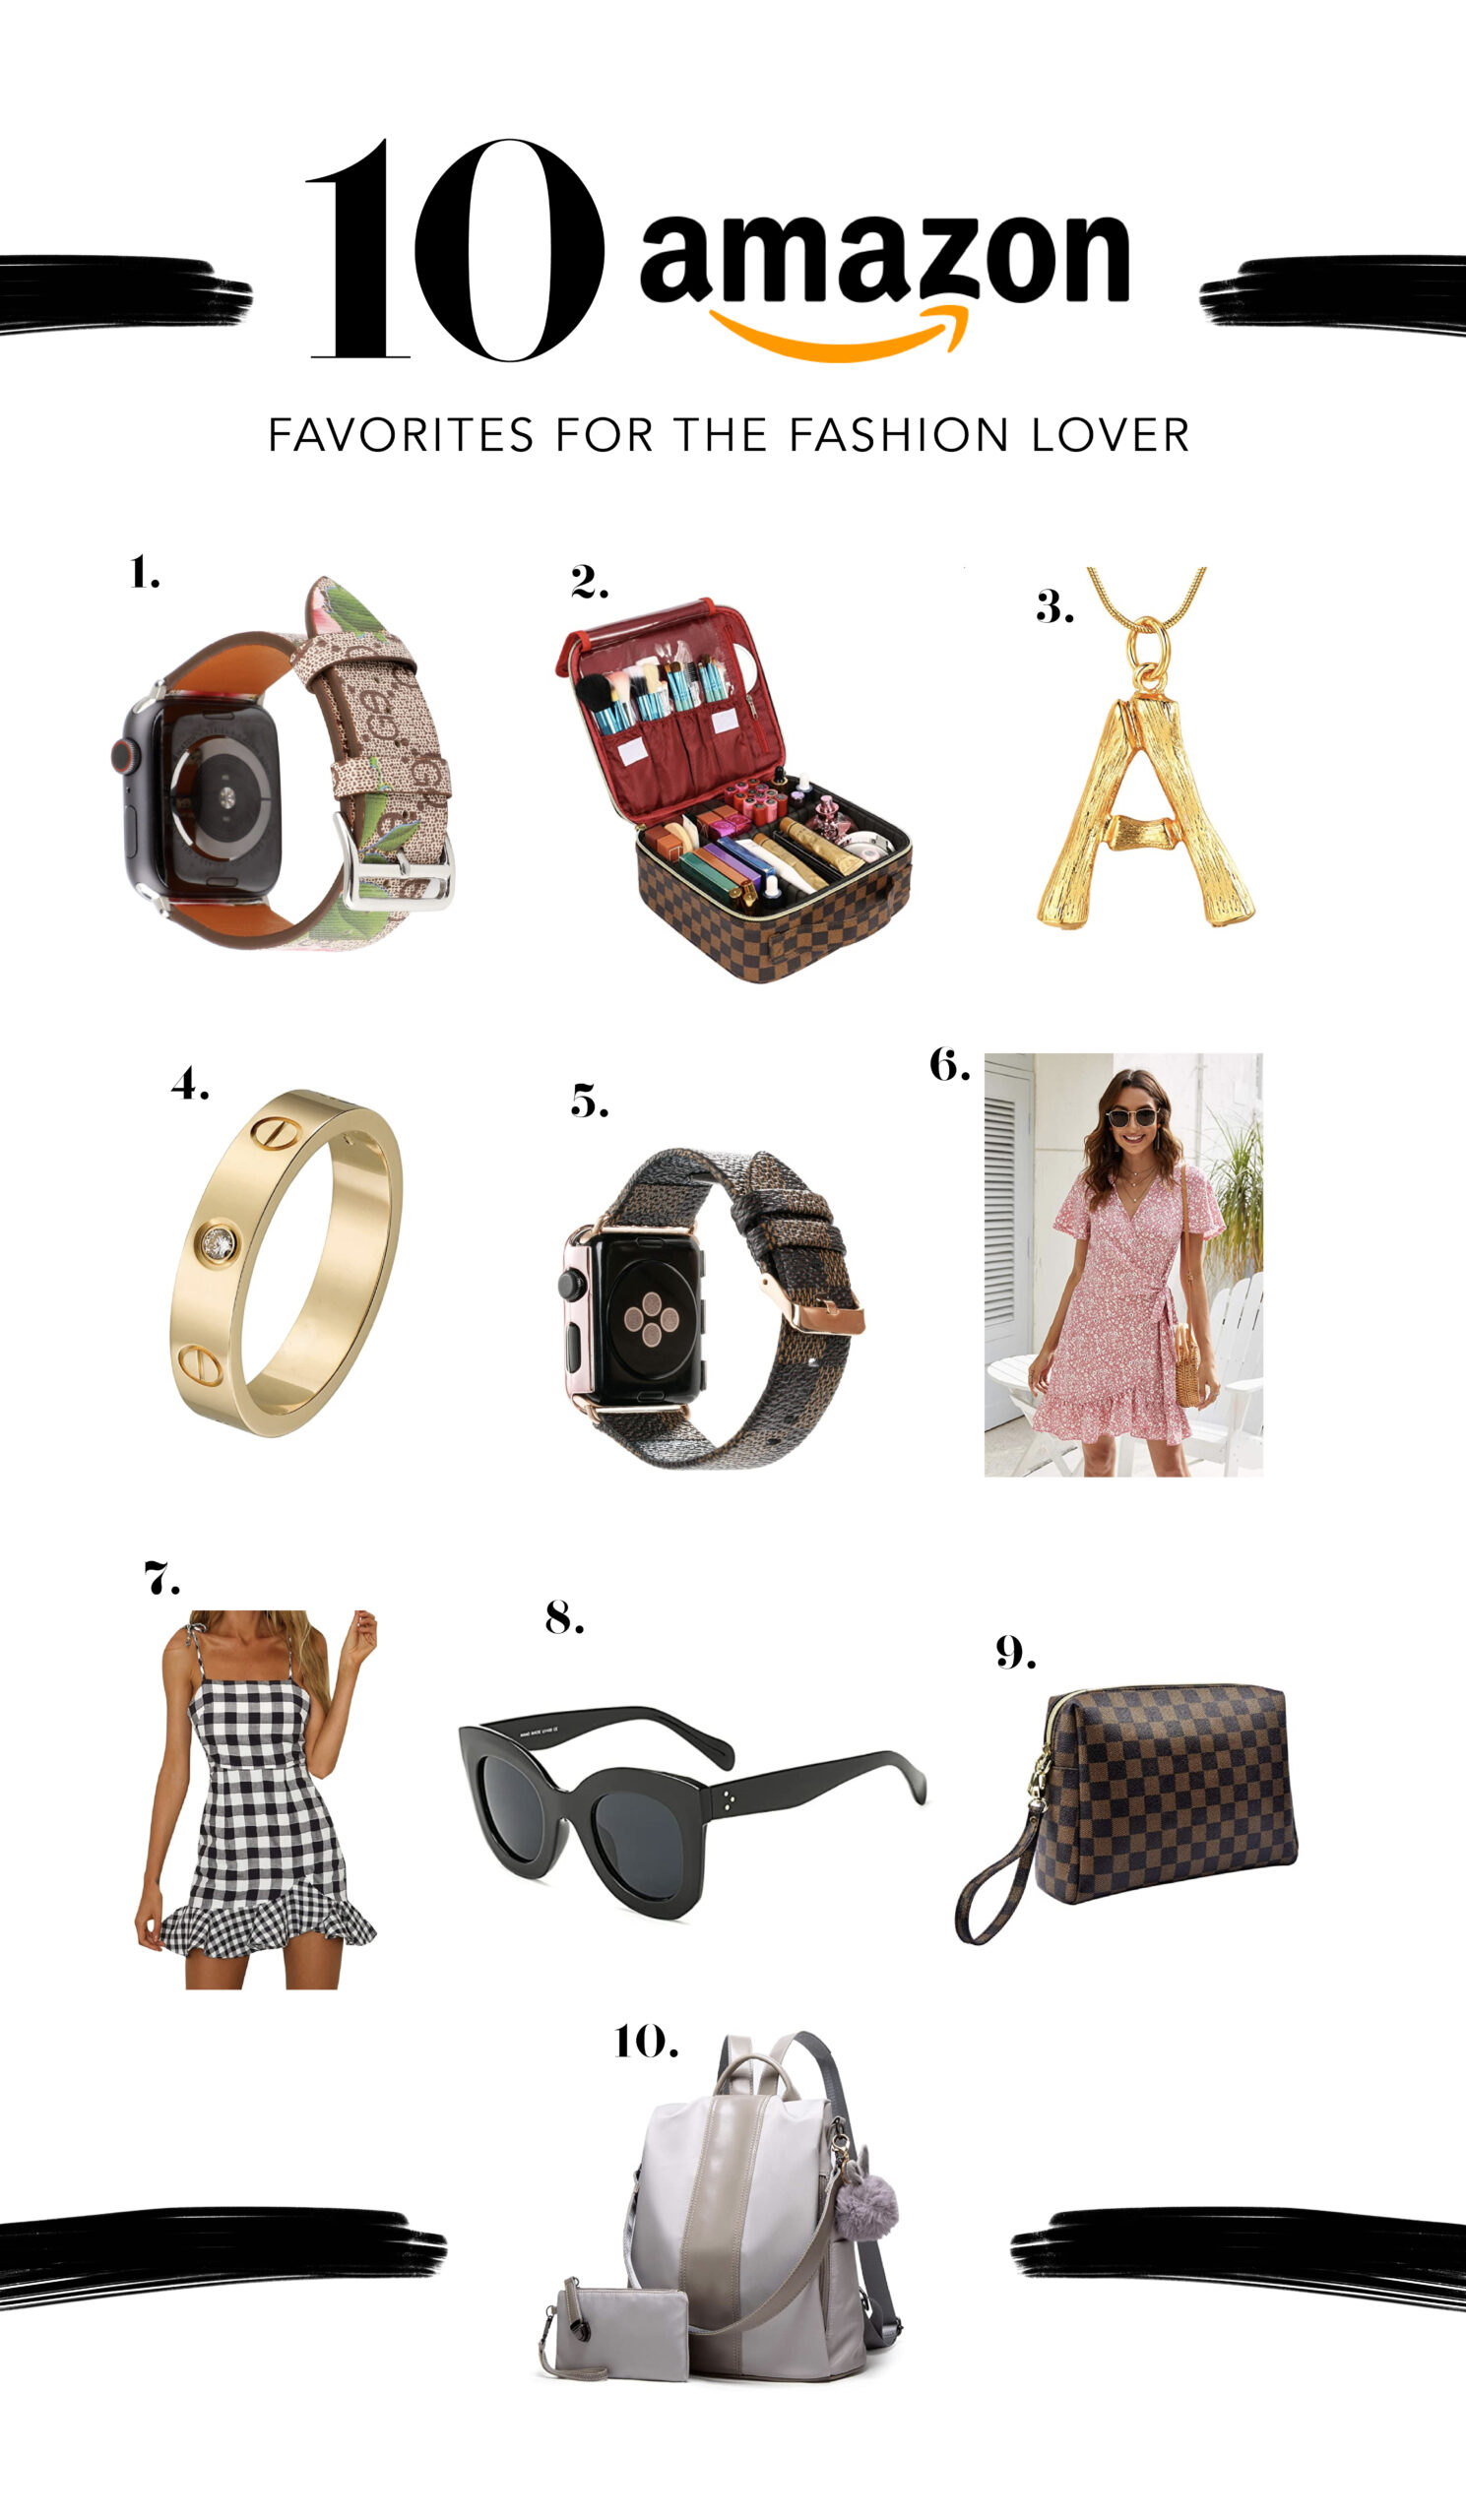 10 amazon faves for fashion lover